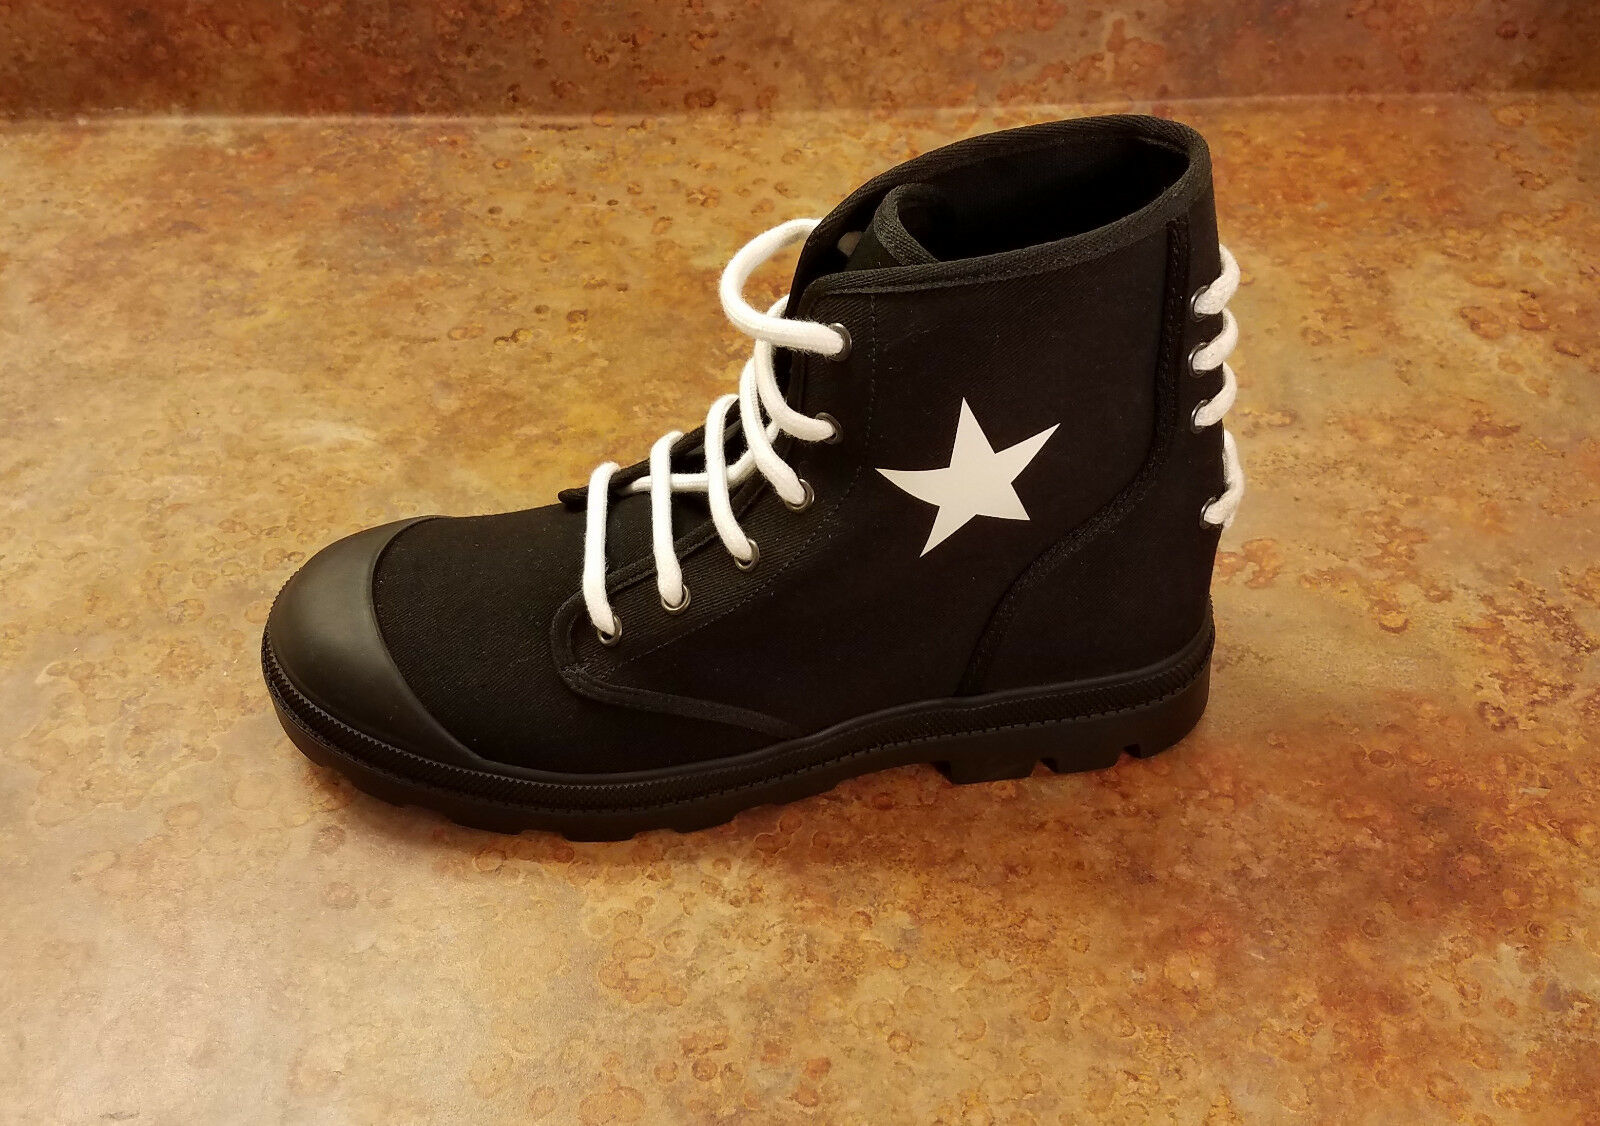 New  Givenchy 'Olympus' Star Print Canvas Boots Black Mens 7 US 40 Eur MSRP  695